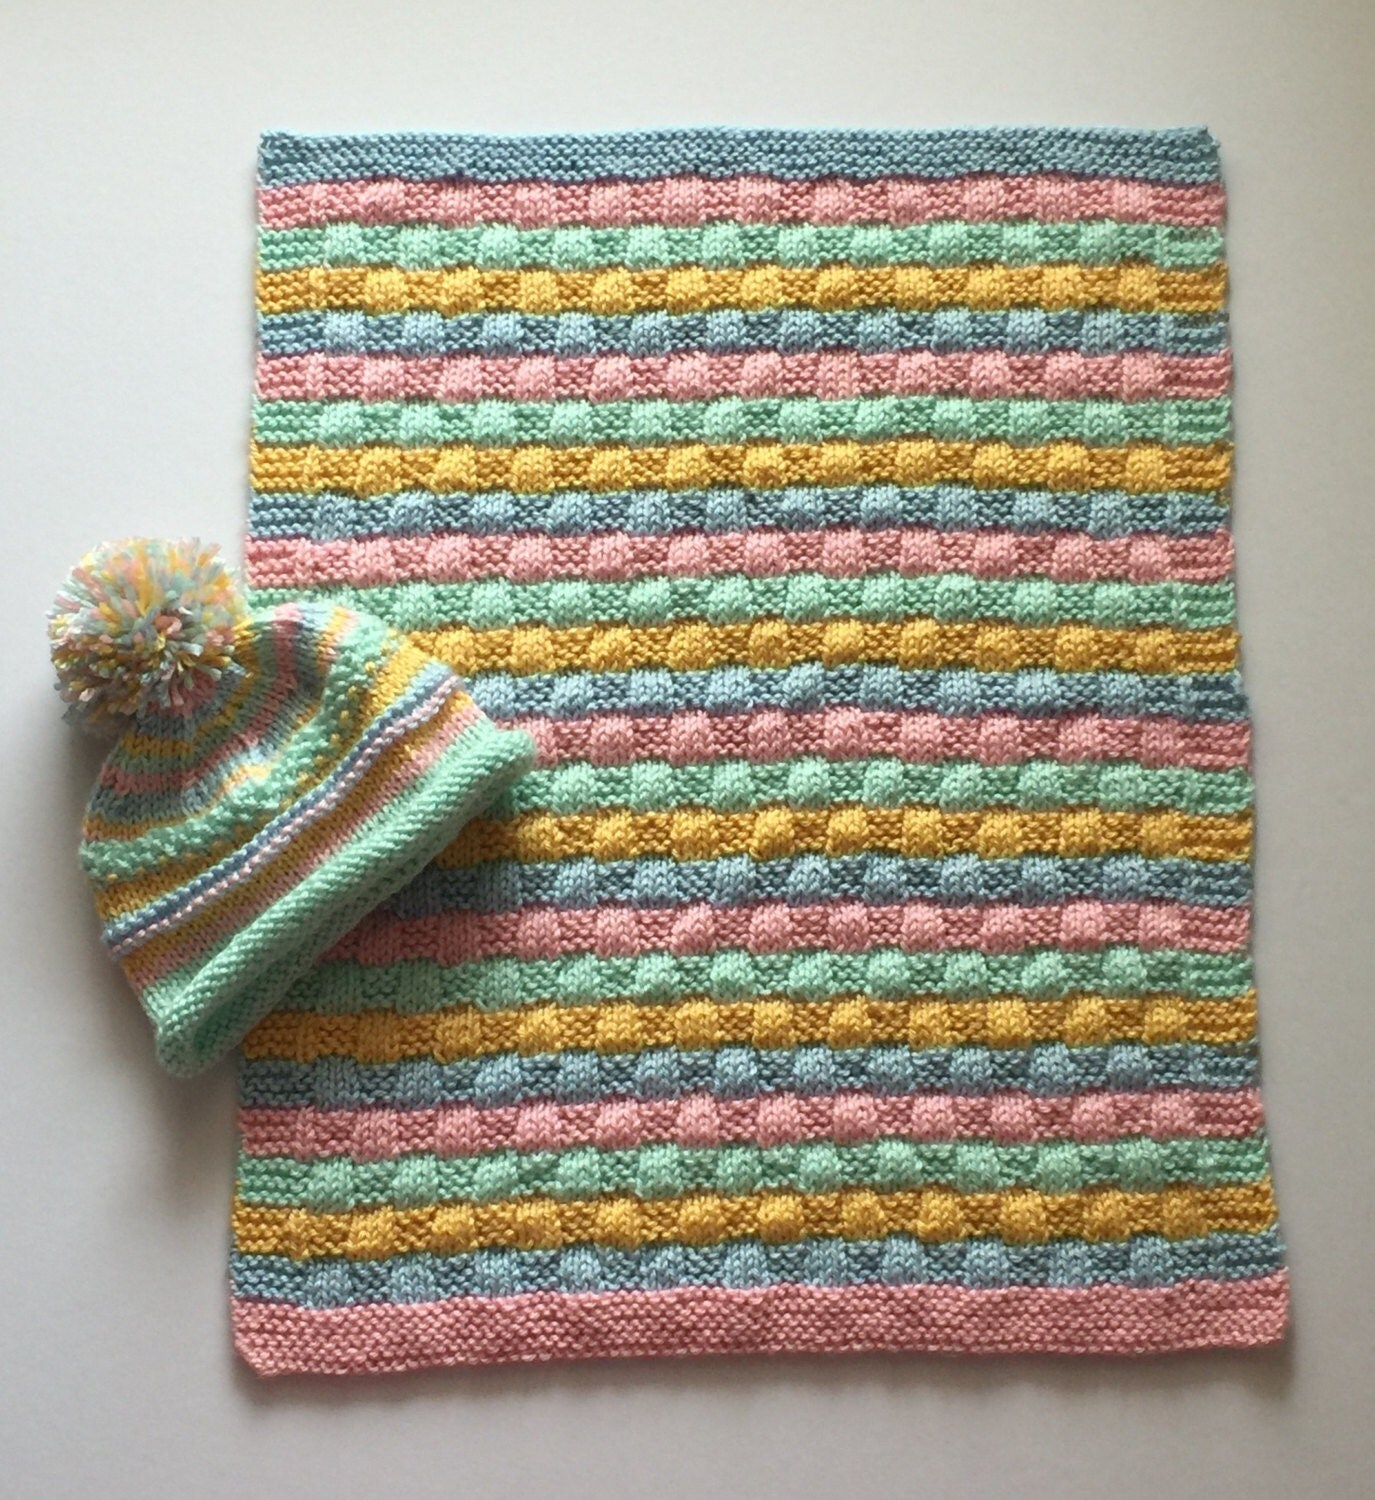 Knit Pattern For Baby Car Seat Blanket : Knit baby car seat/carrier blanket